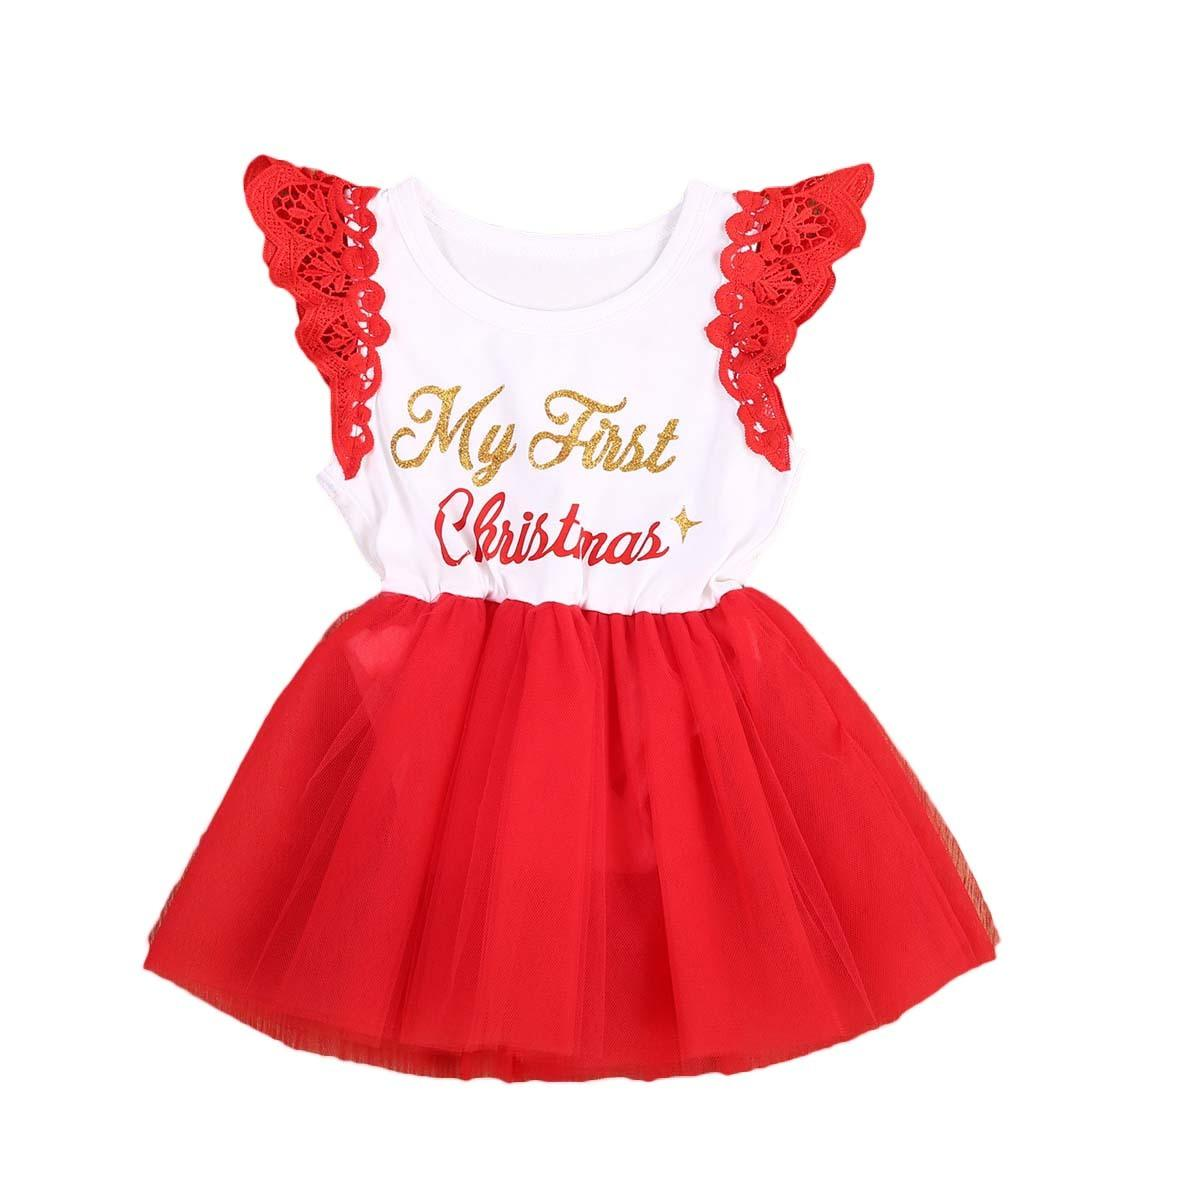 a9f02f7b8c70e Pudcoco 2017 New Christmas Baby Girls Romper Cute Letter Lace Off shoulder  Princess Red Romper Jumpsuit for baby first christmas Y18102907